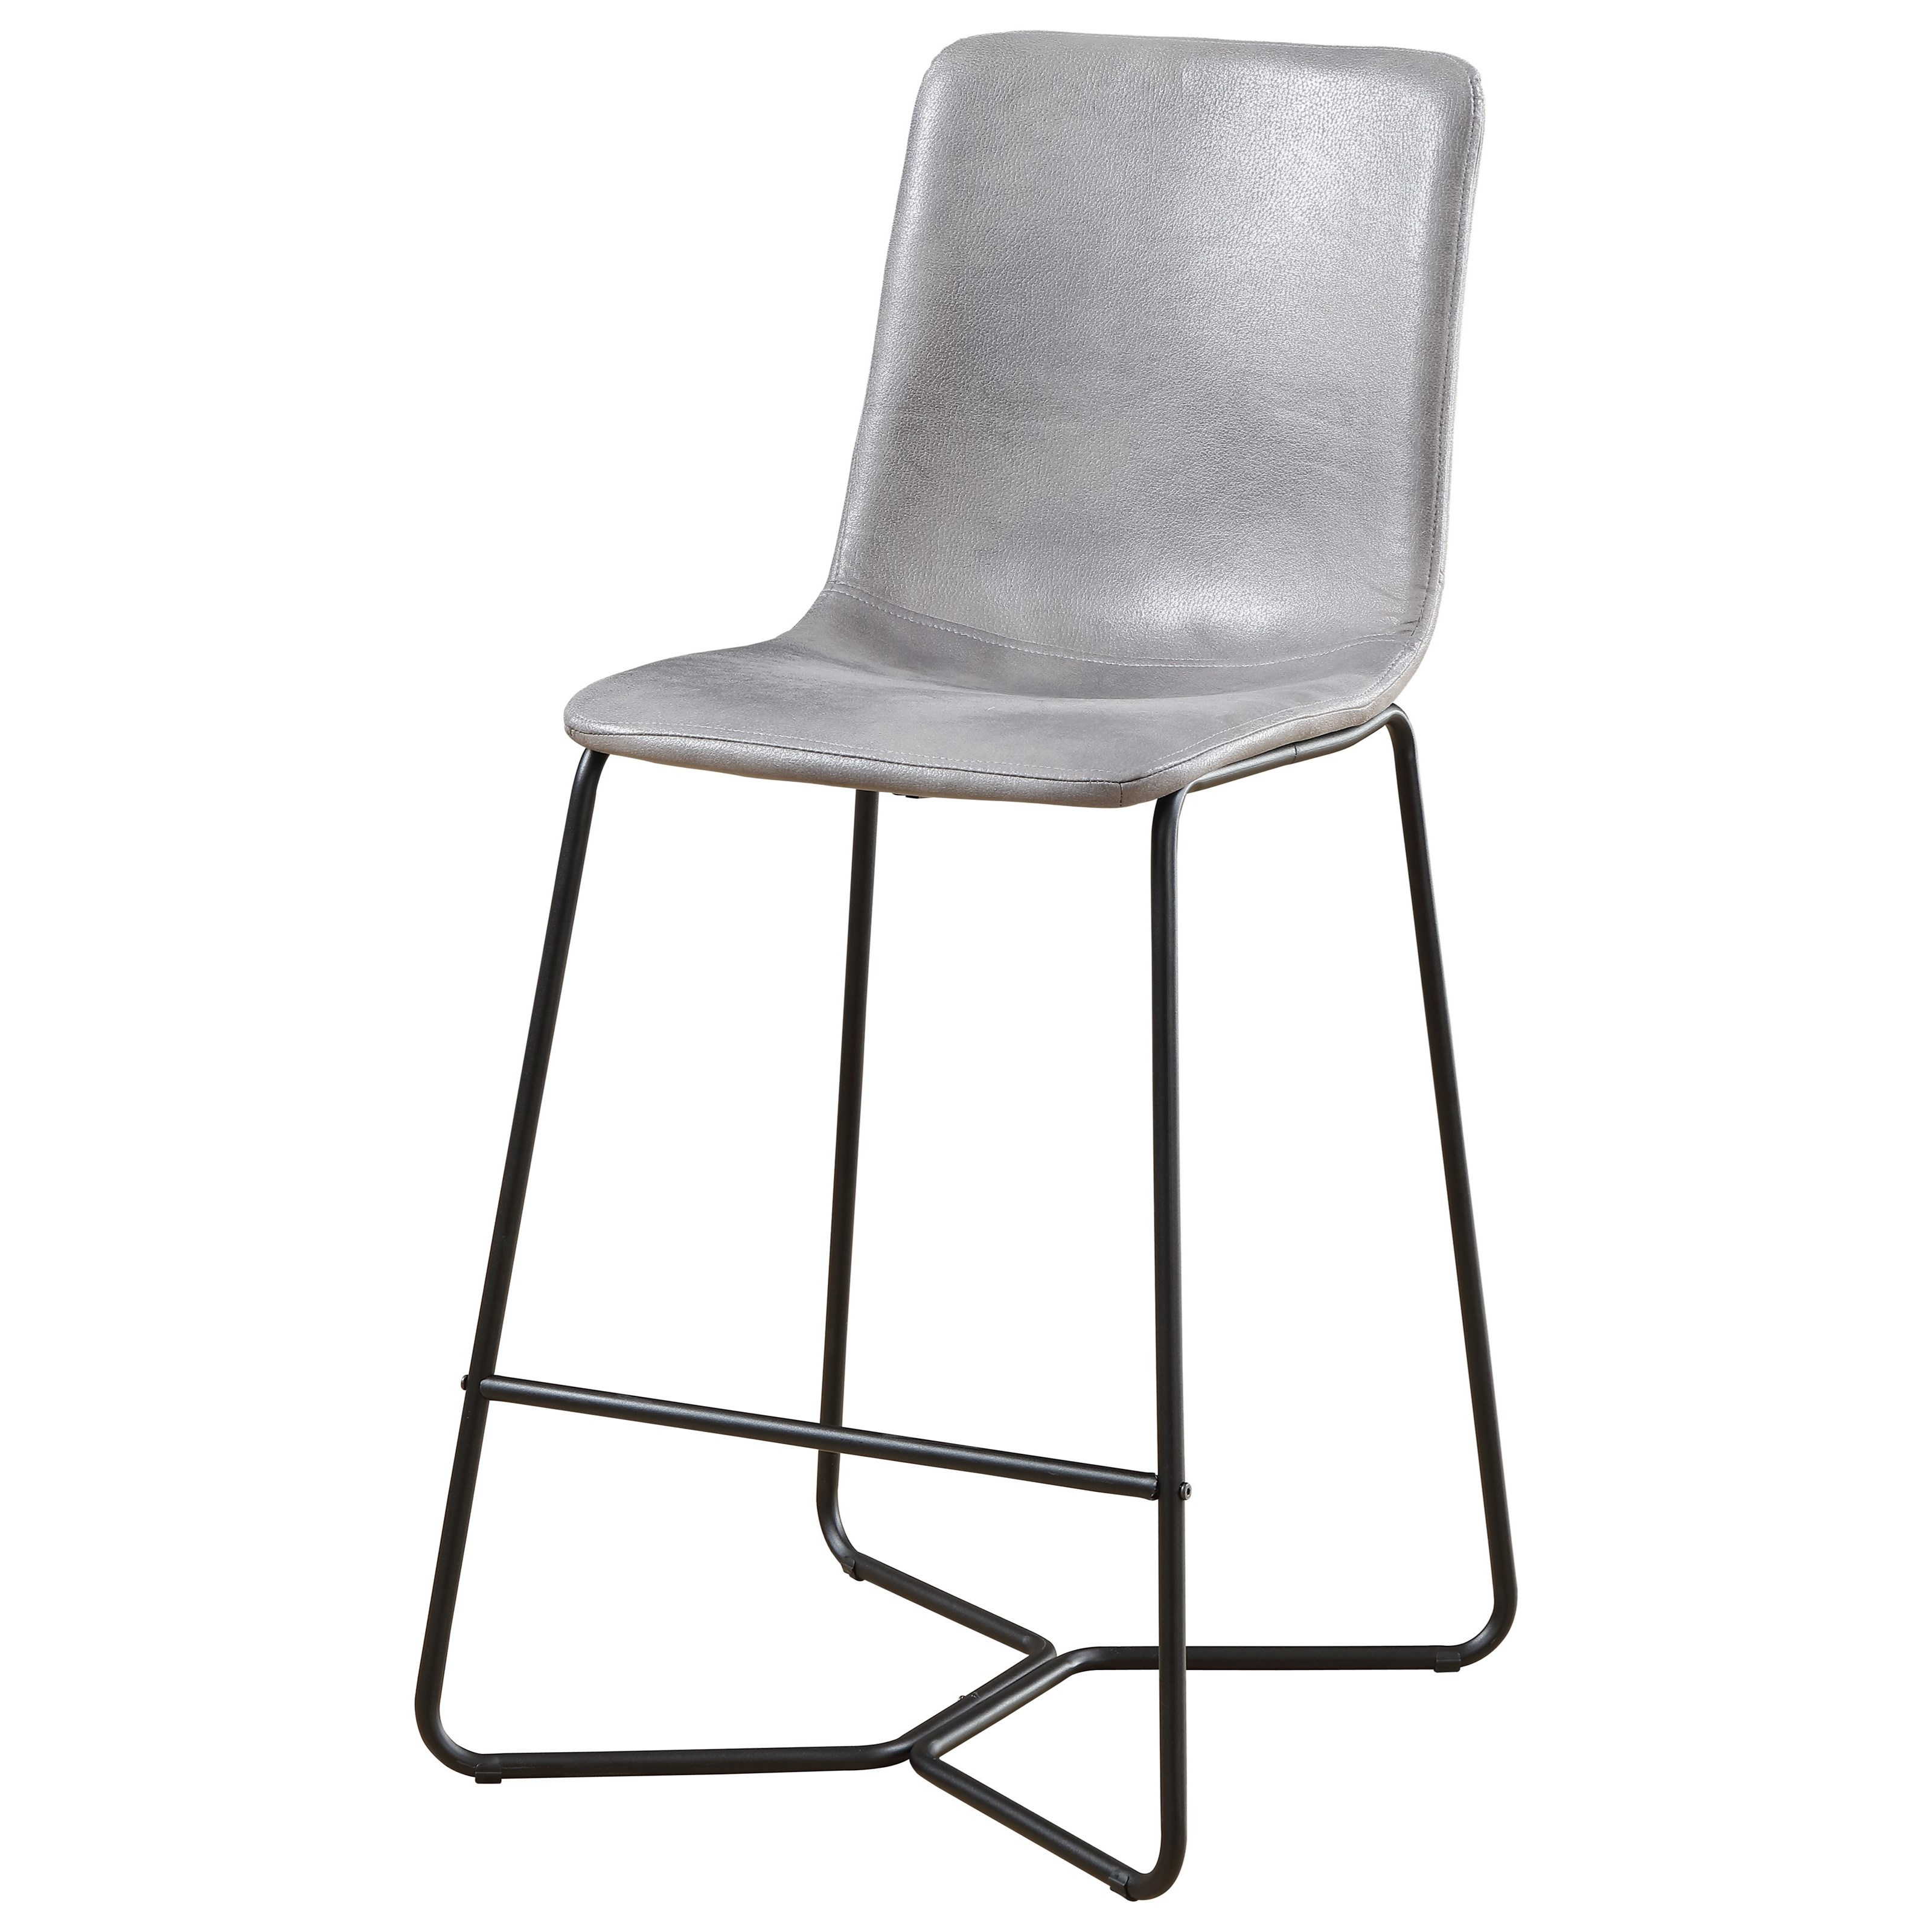 """Emmett 30"""" Upholstered Bar Stool by Emerald at Northeast Factory Direct"""